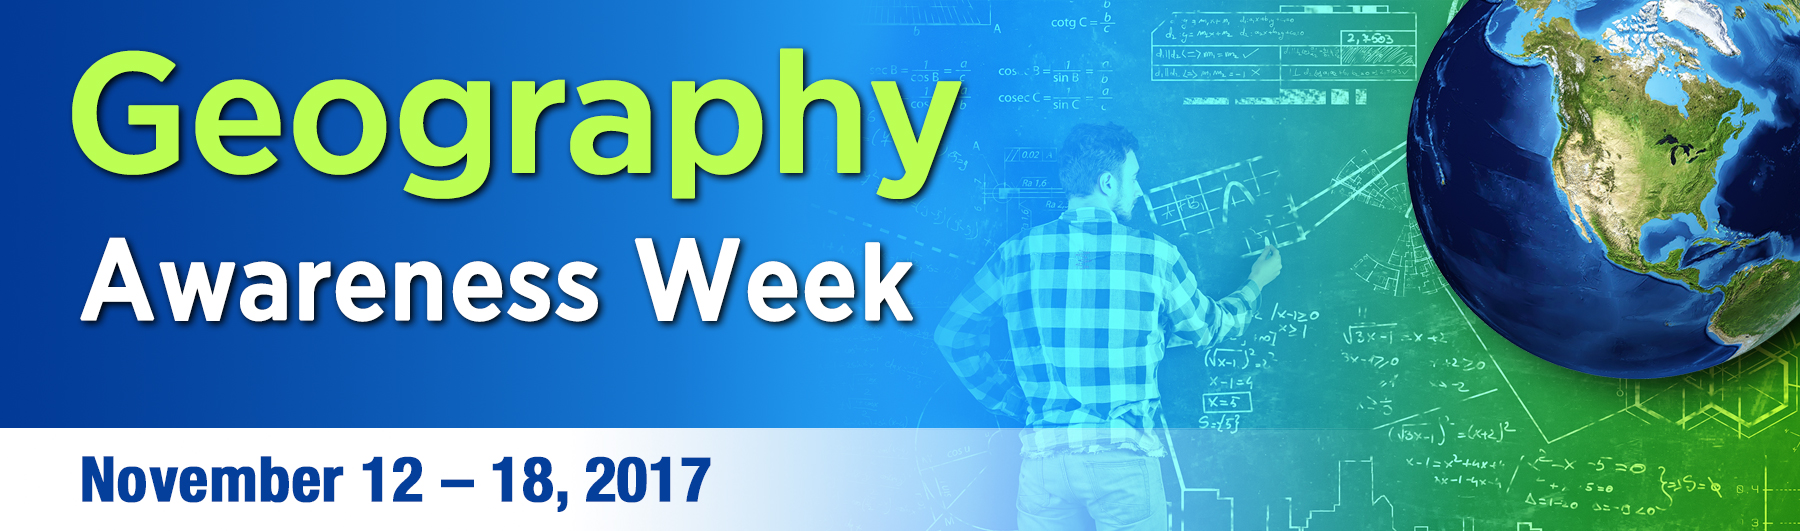 Geography Awareness Week - November 12 - 18, 2017